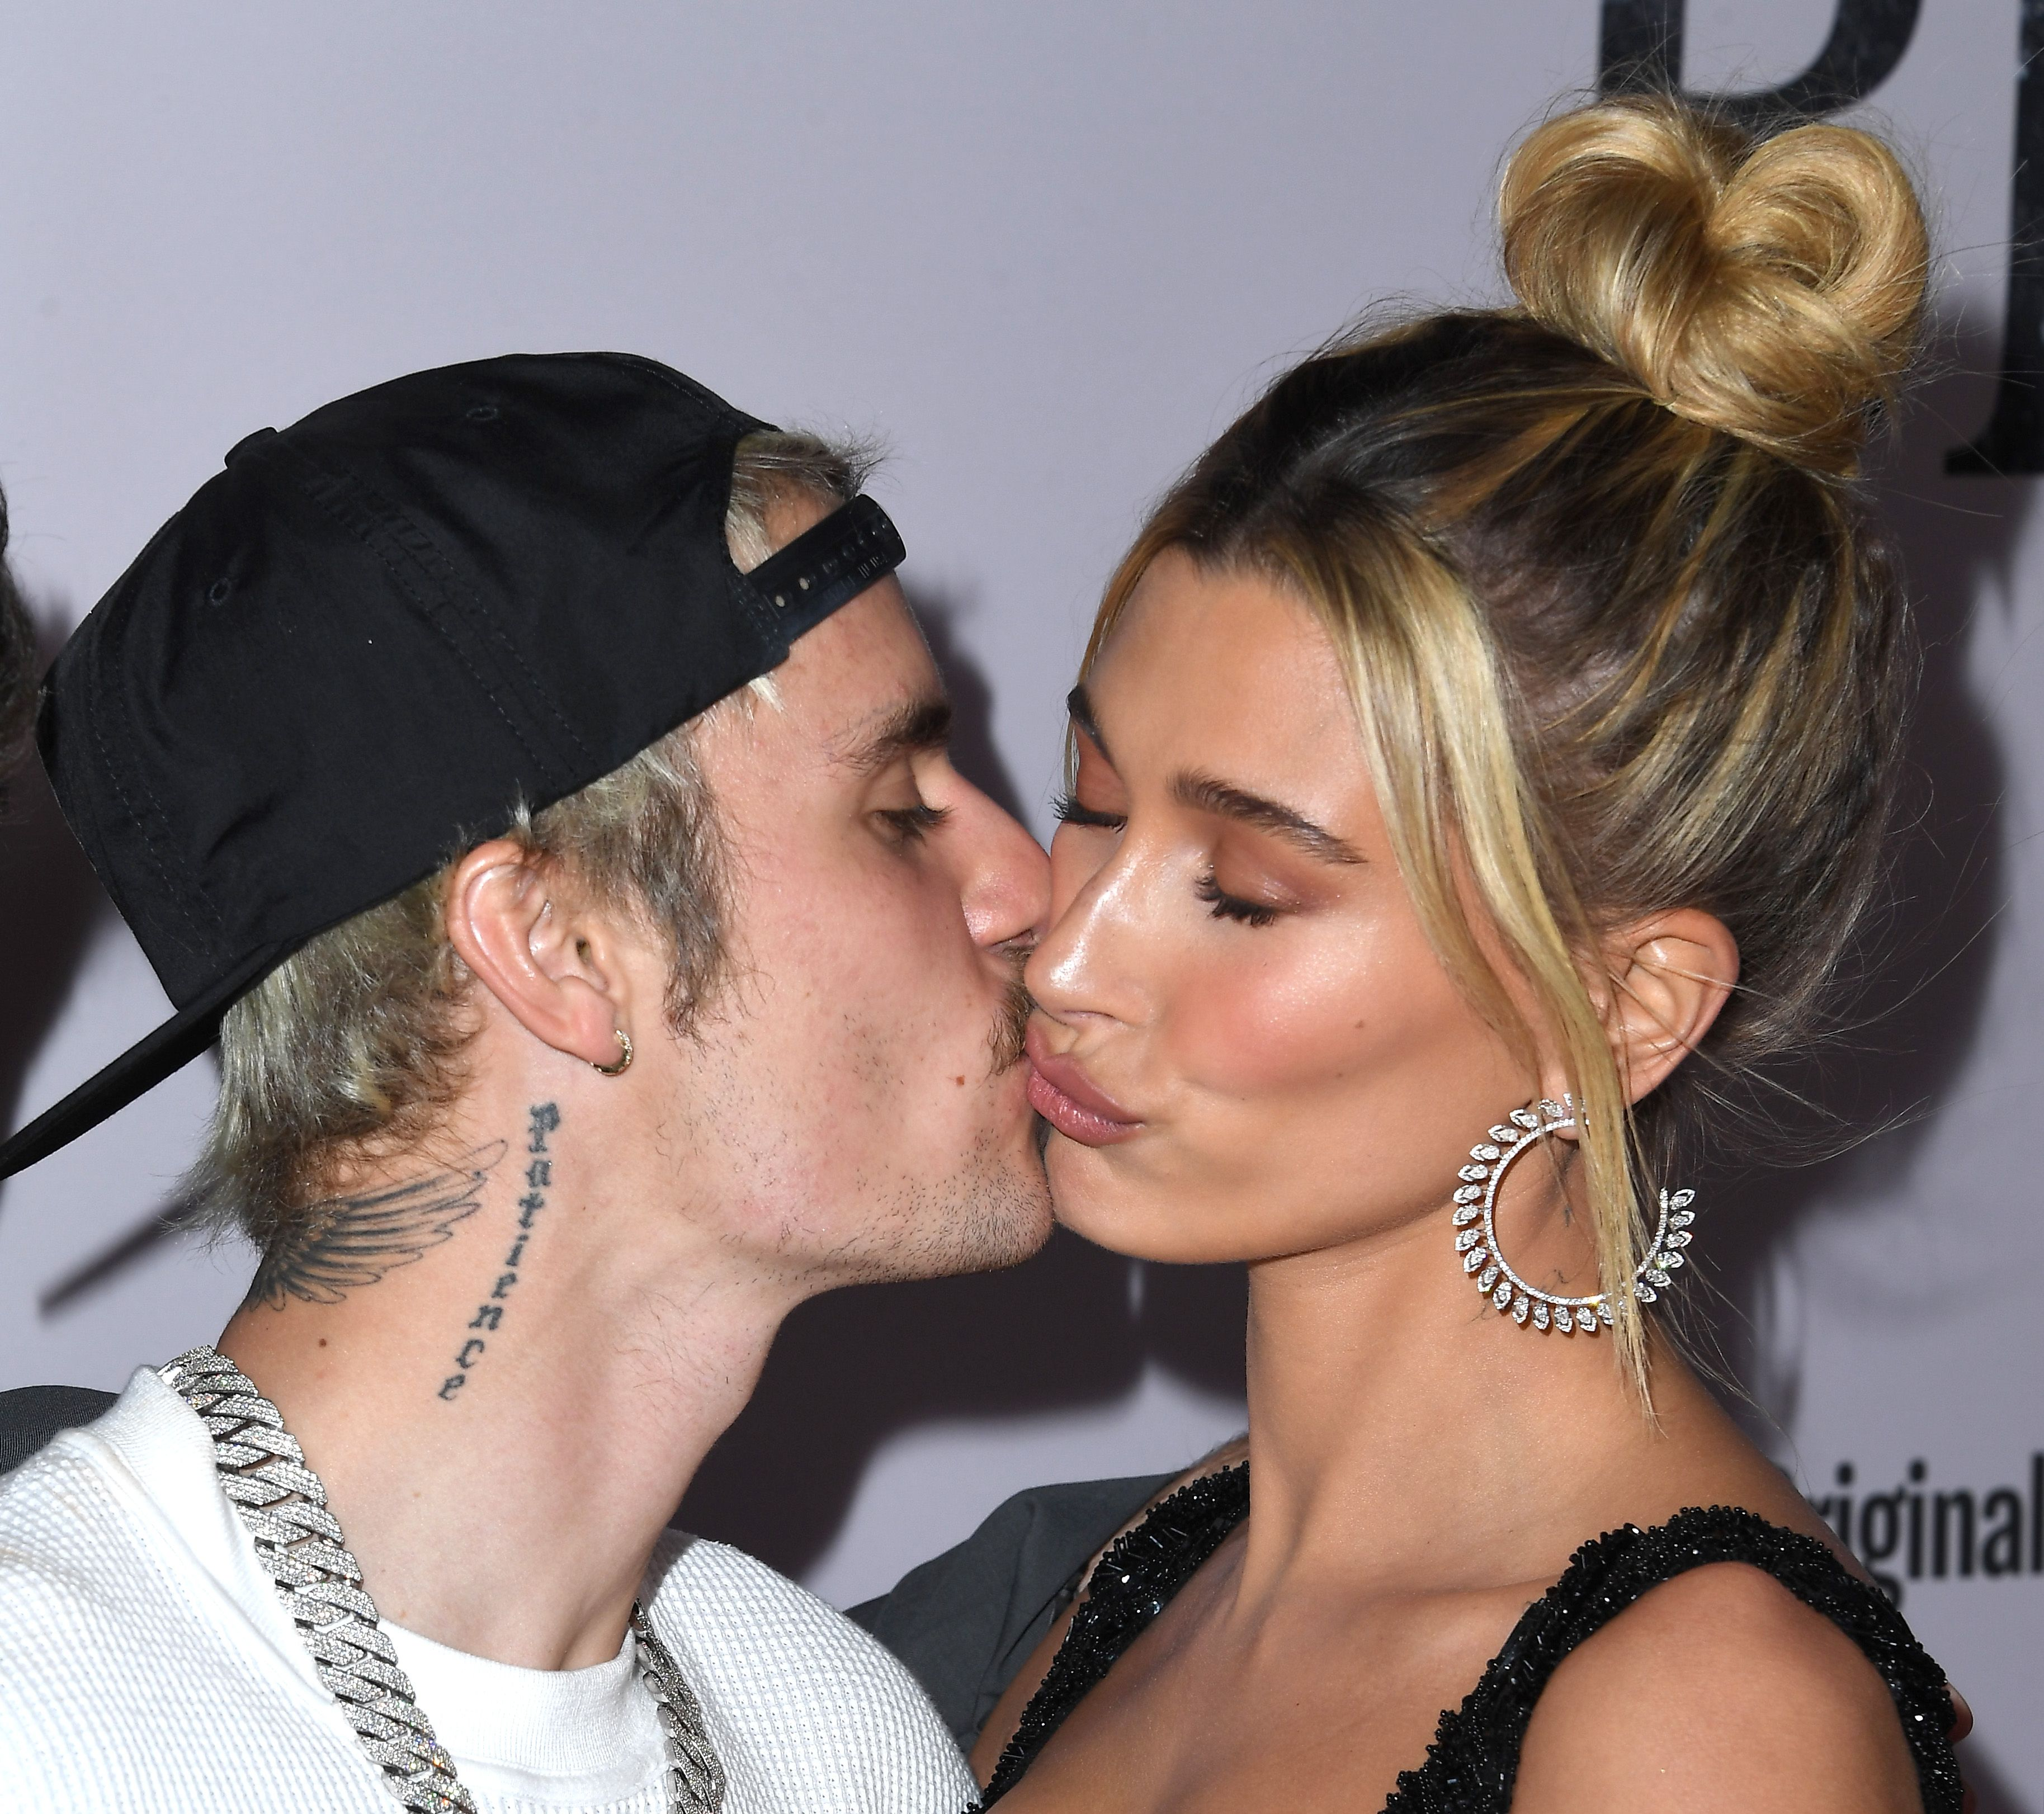 Hailey and Justin Bieber kiss candidly